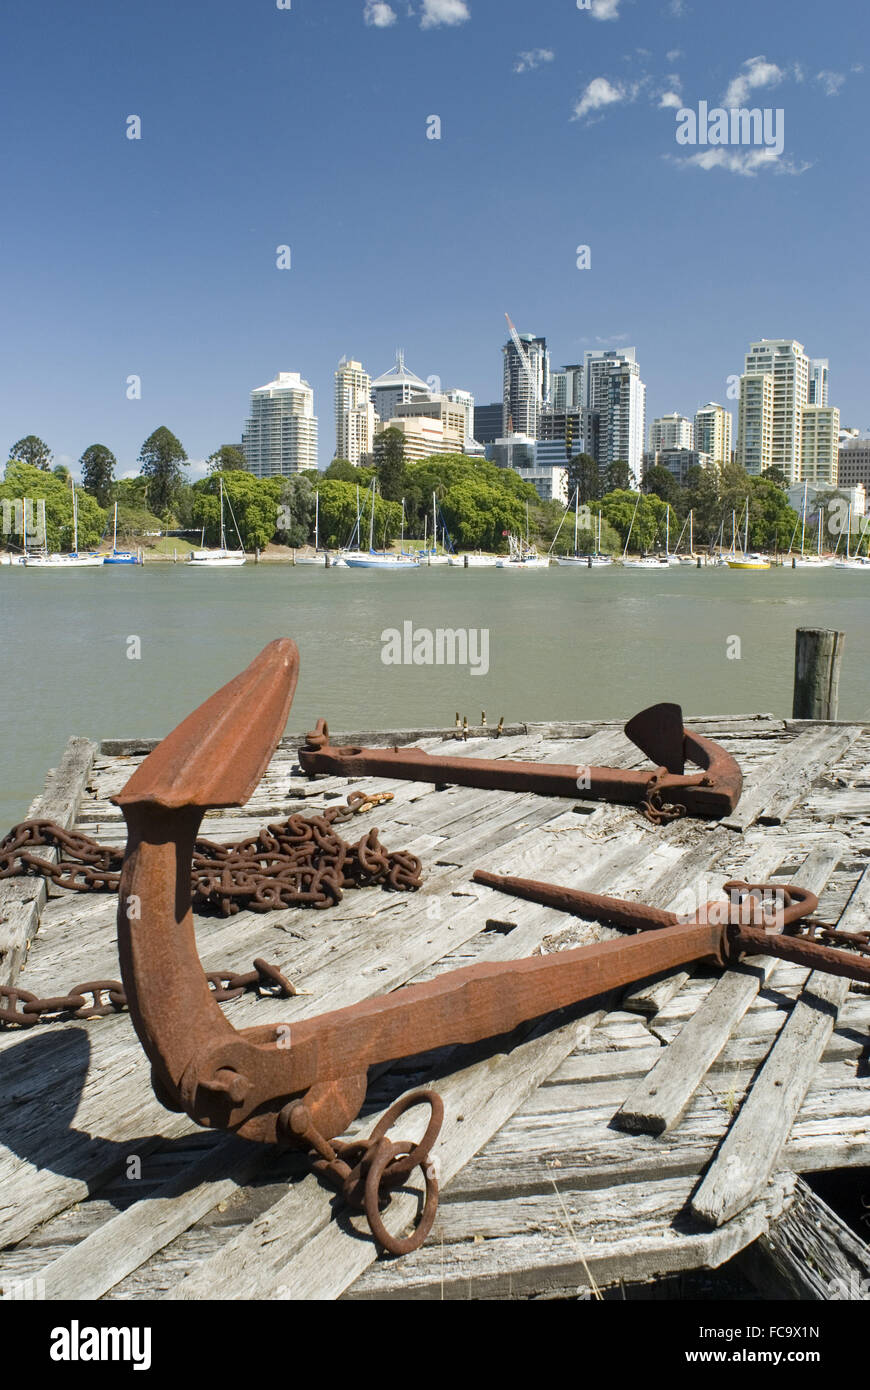 Brisbane River - Stock Image